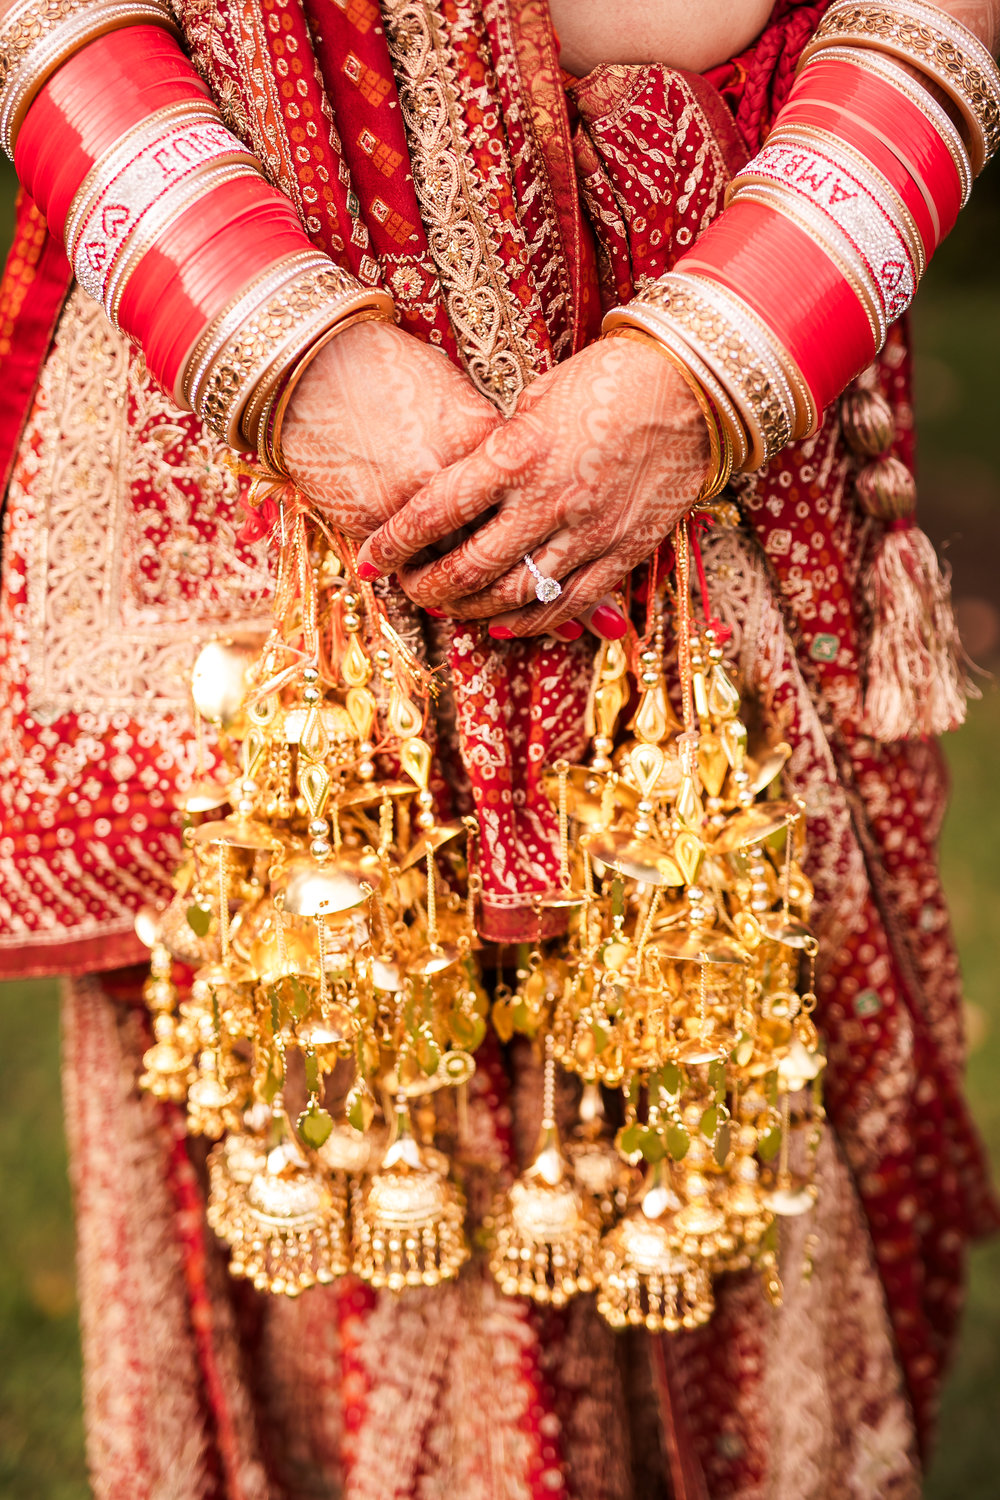 INDIAN WEDDING BRIDE DECOR.jpg